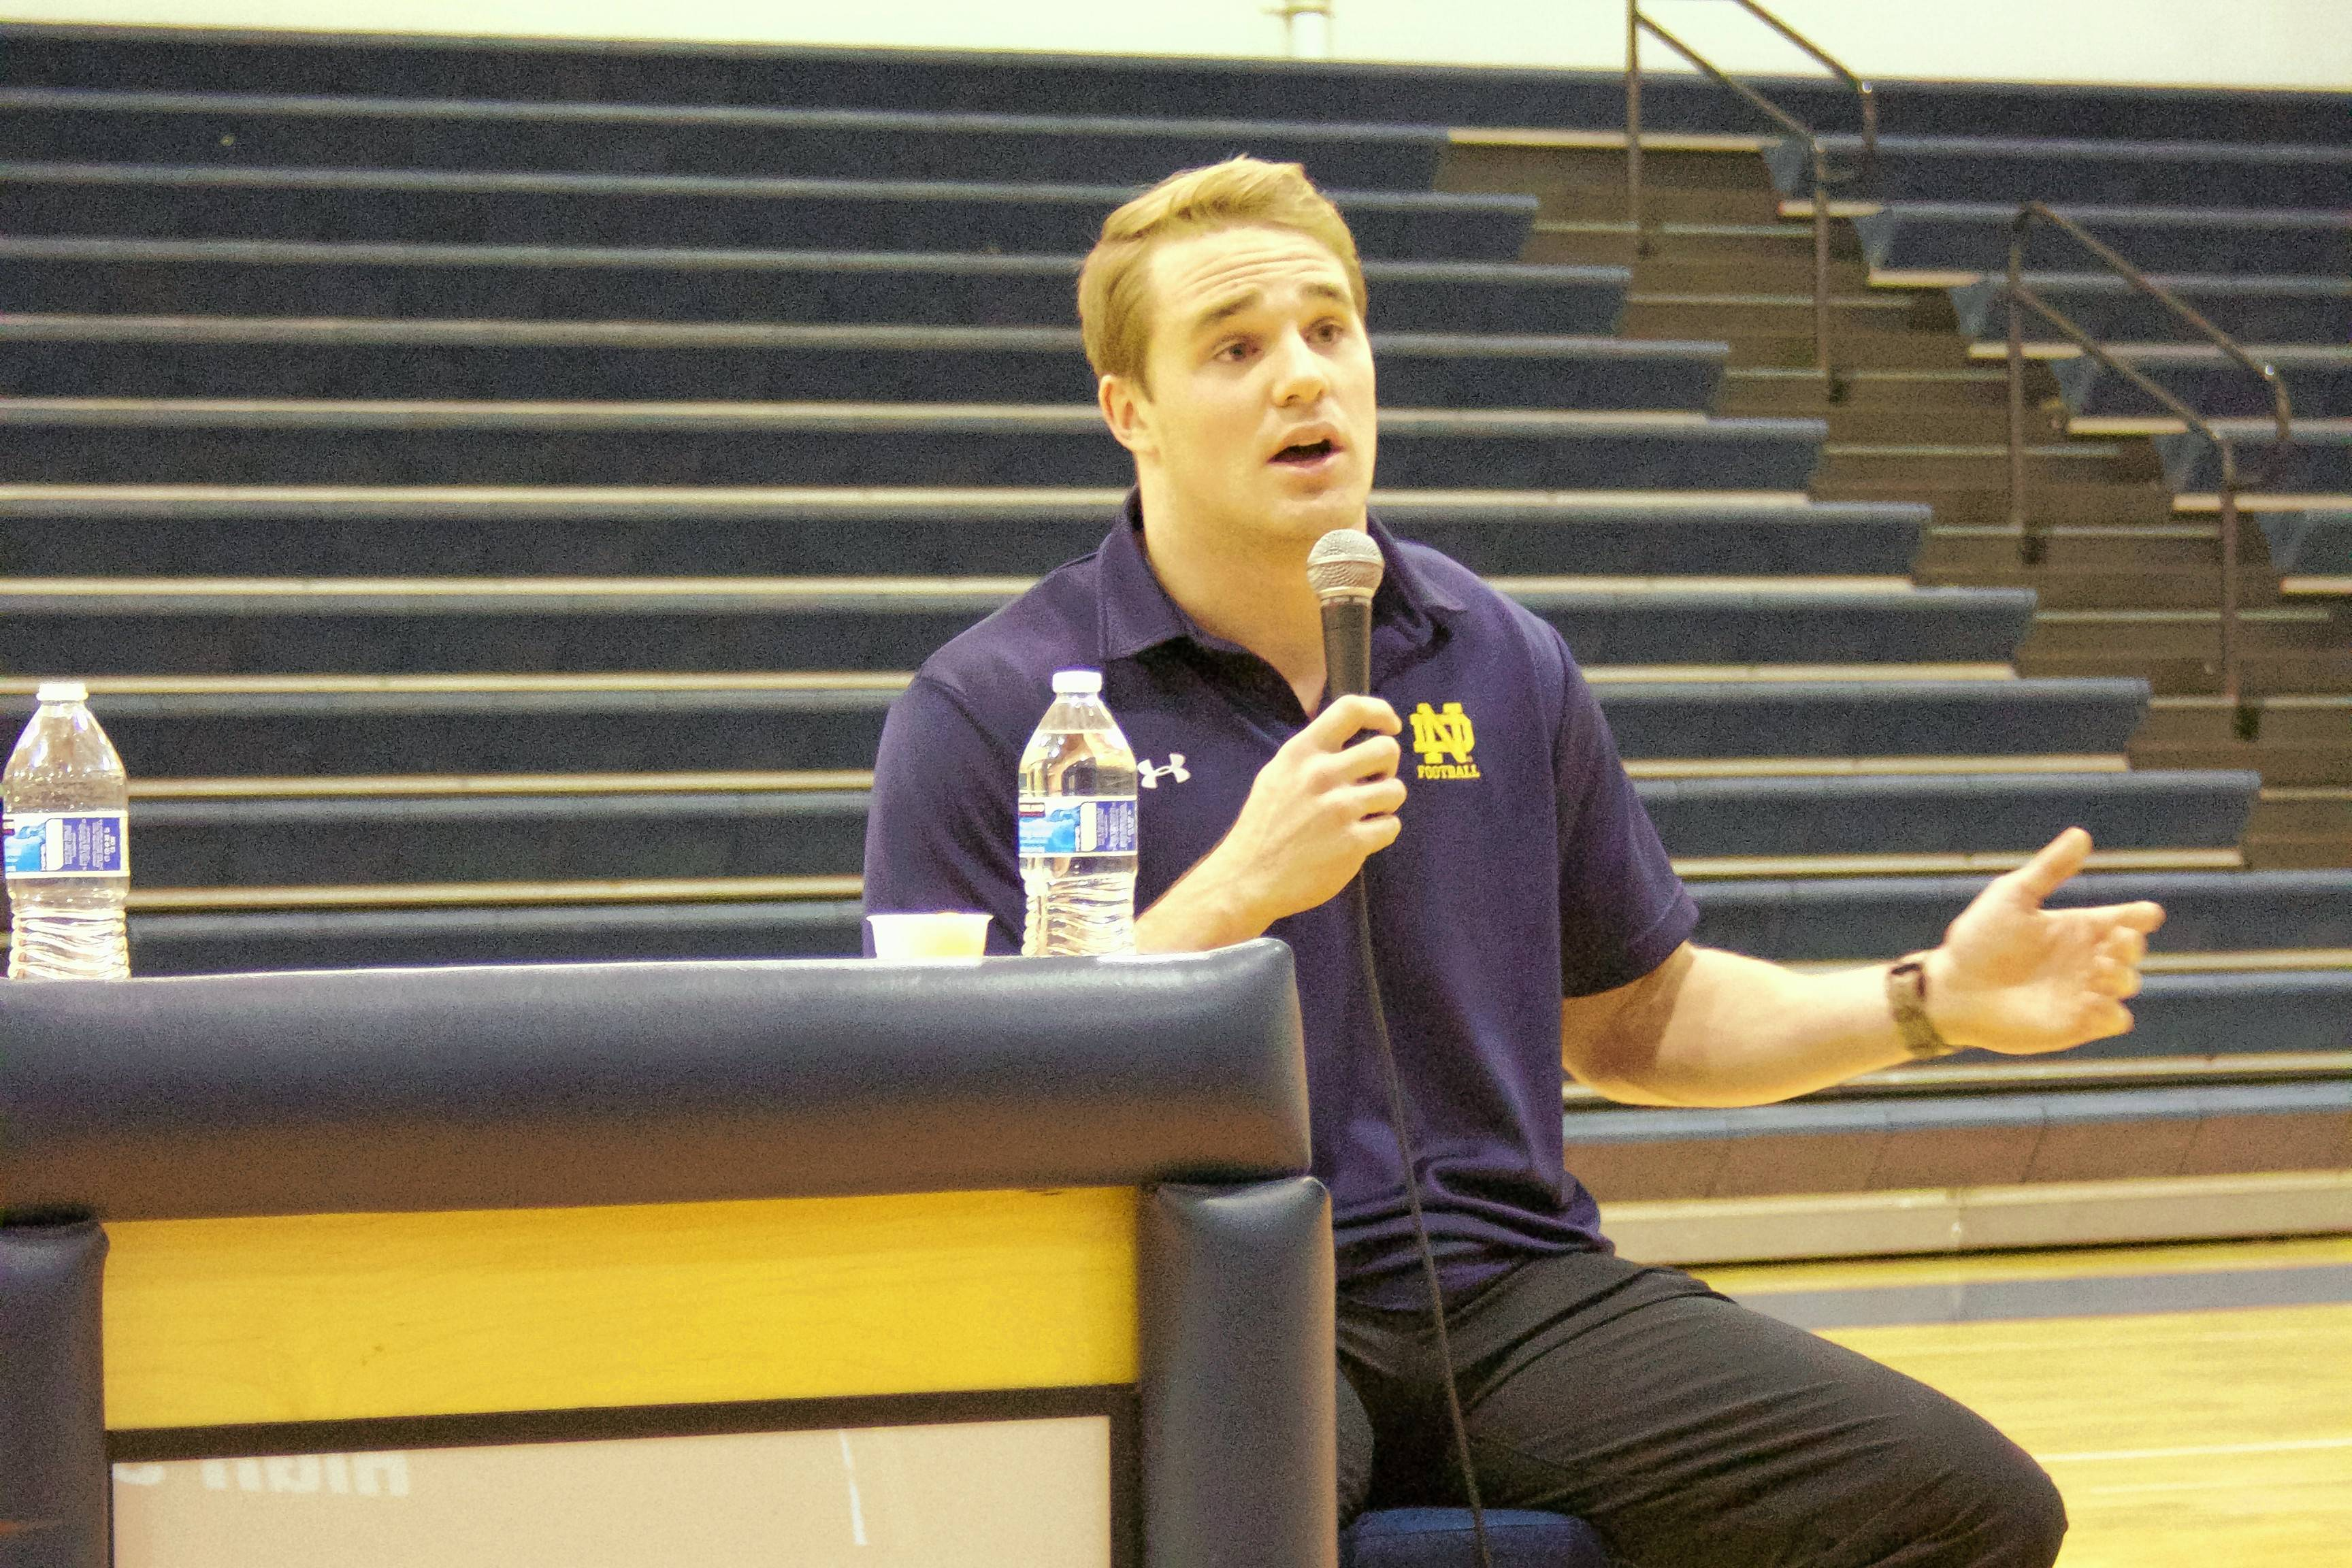 Notre Dame linebacker and co-captain, Joe Schmidt, came to St. Viator last month to address interested students about how his penchant for writing down goals and hard work helped him go from being a walk-on to starter and captain.